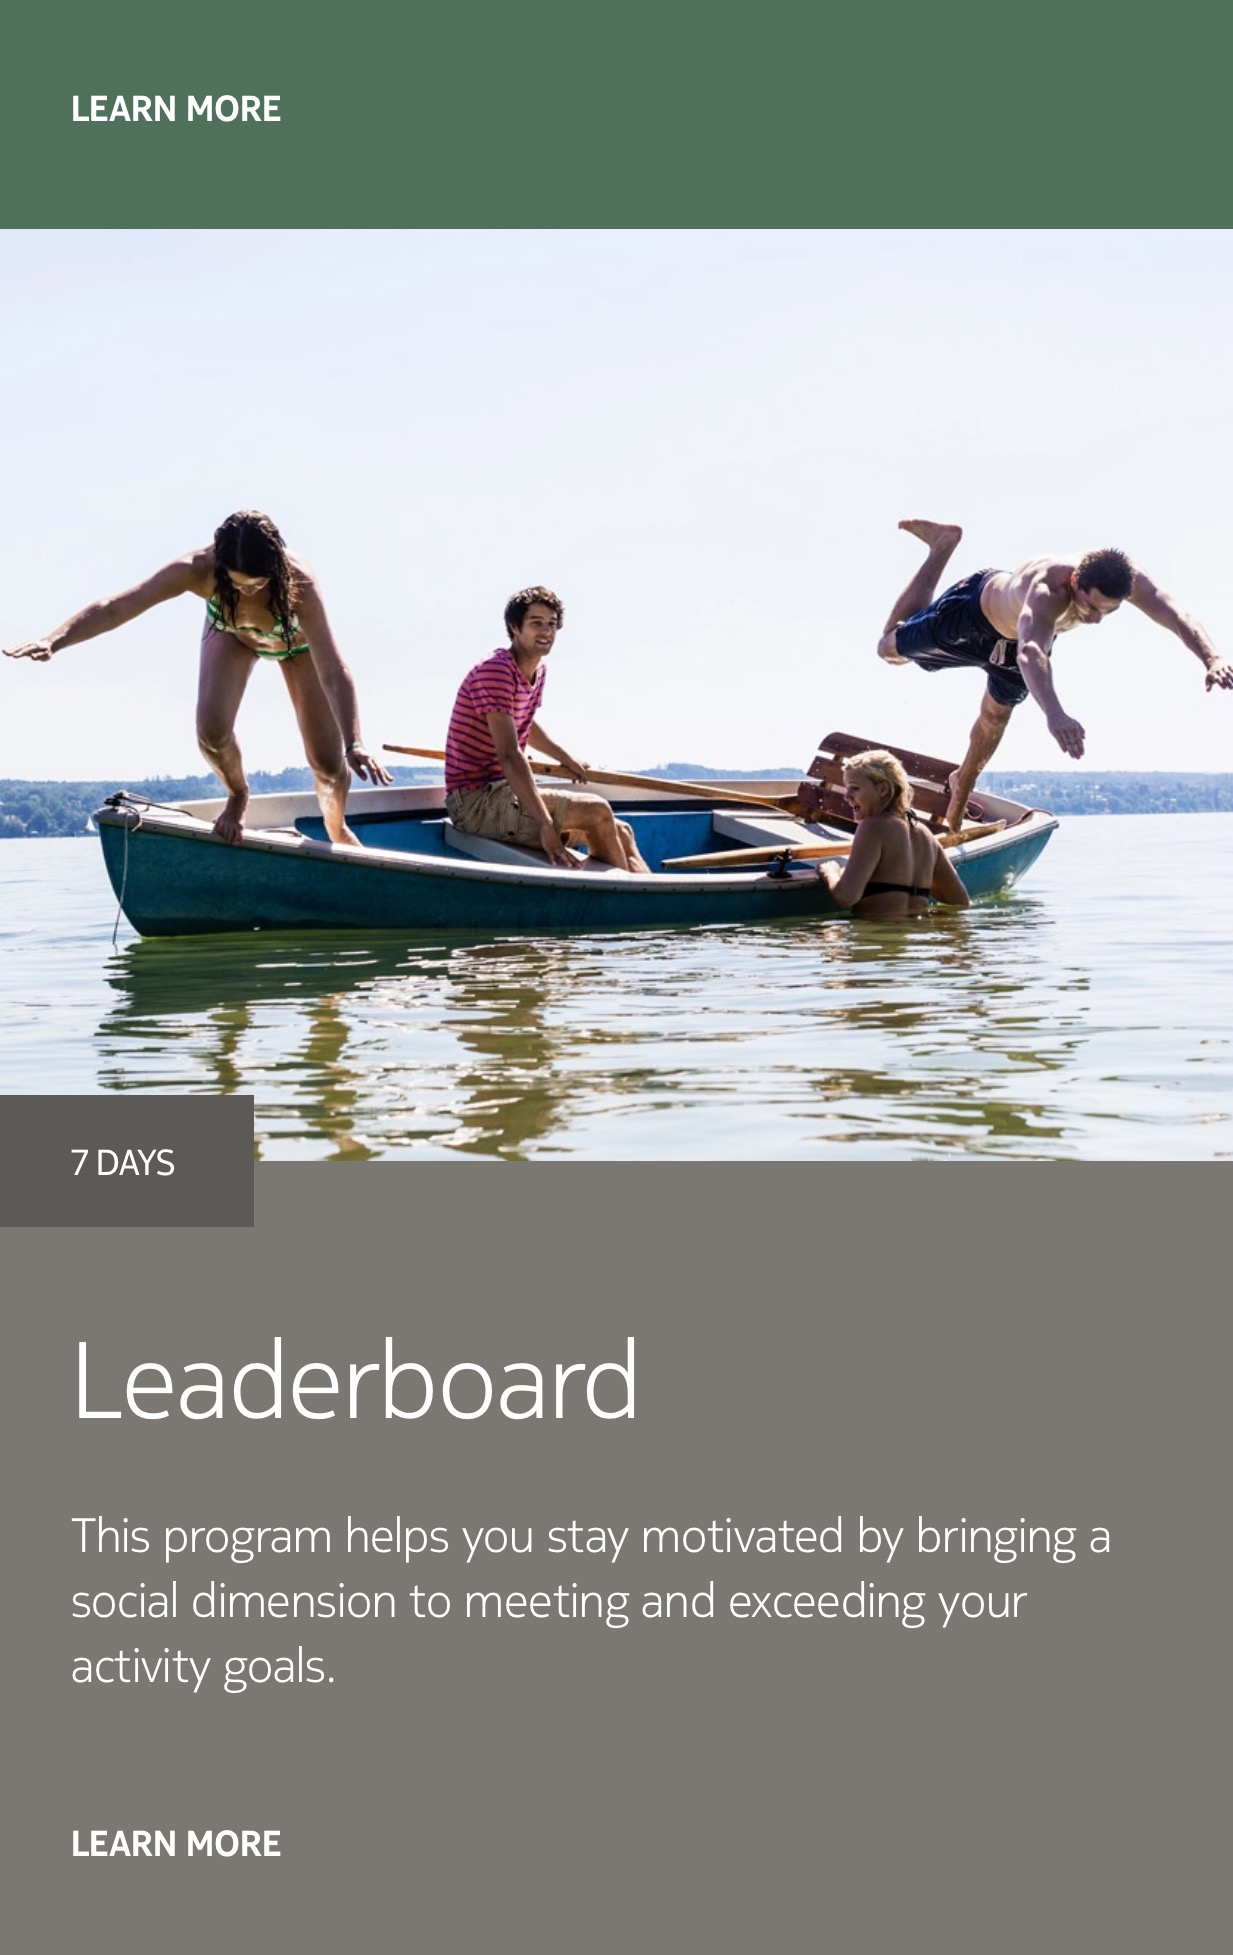 Leaderboard-Wellness-Program.jpg